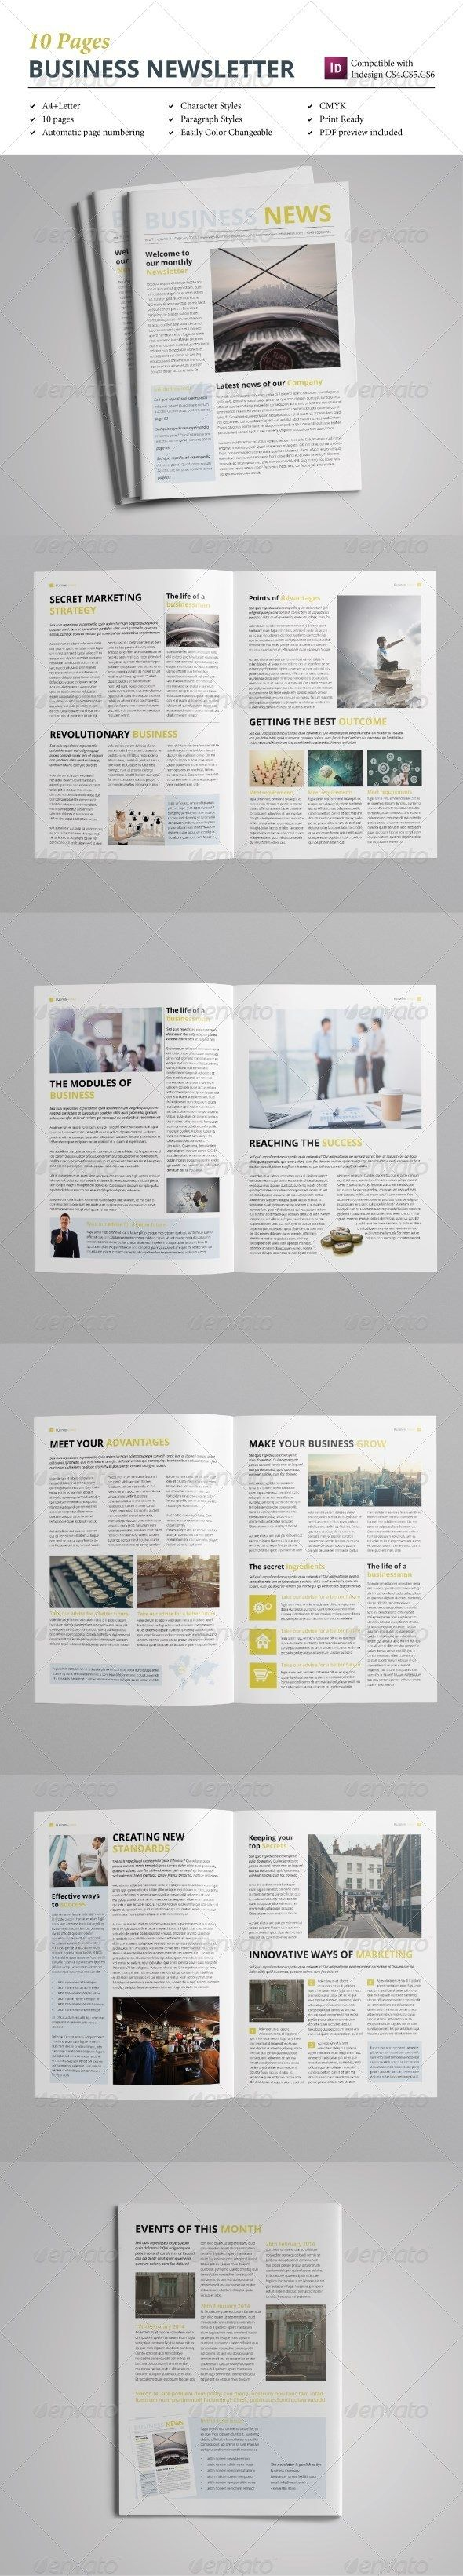 business newletter vol 2